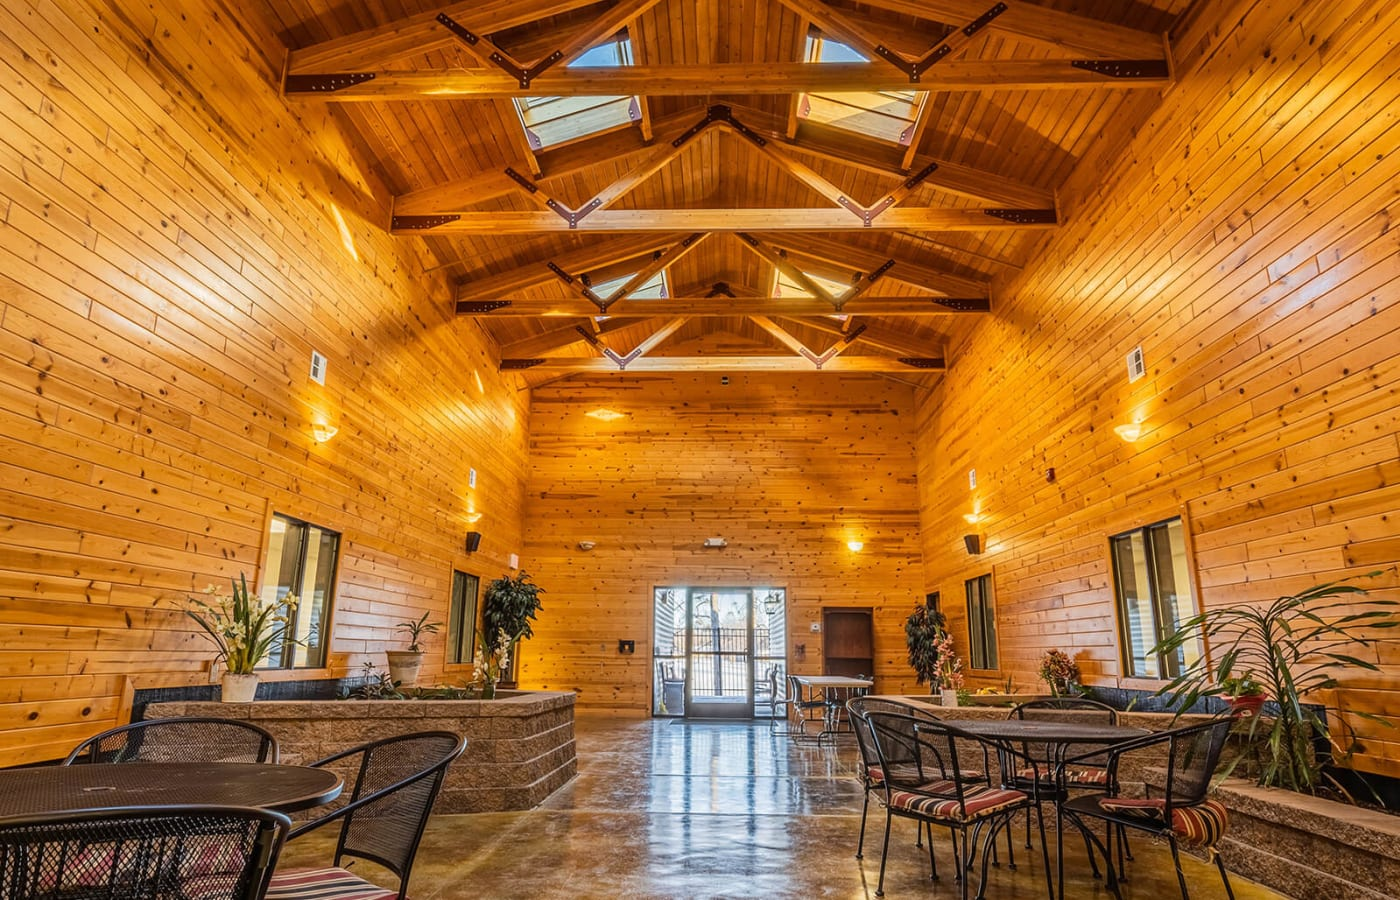 Cathedral ceiling and paneling in woods room at Traditions of Owatonna in Owatonna, Minnesota